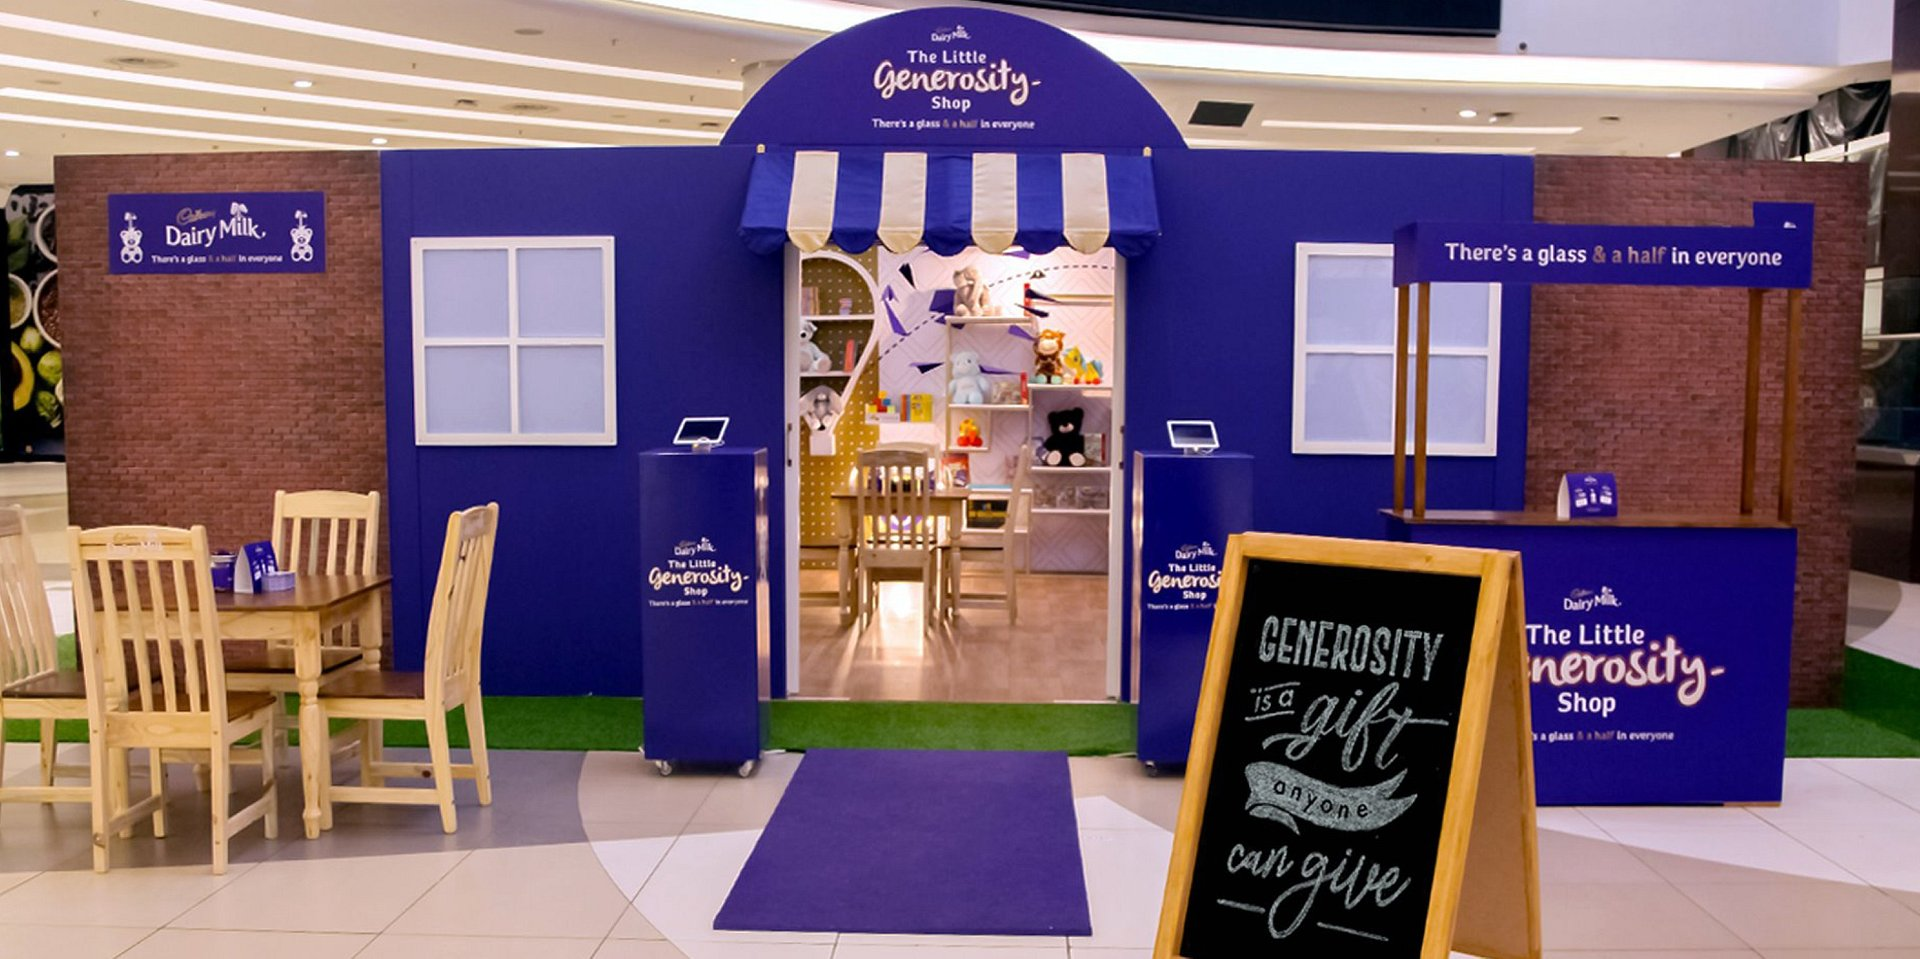 Cadbury Diary Milk collects 90, 898 pre-loved toys, books and games through 'The Little Generosity Shop' initiative